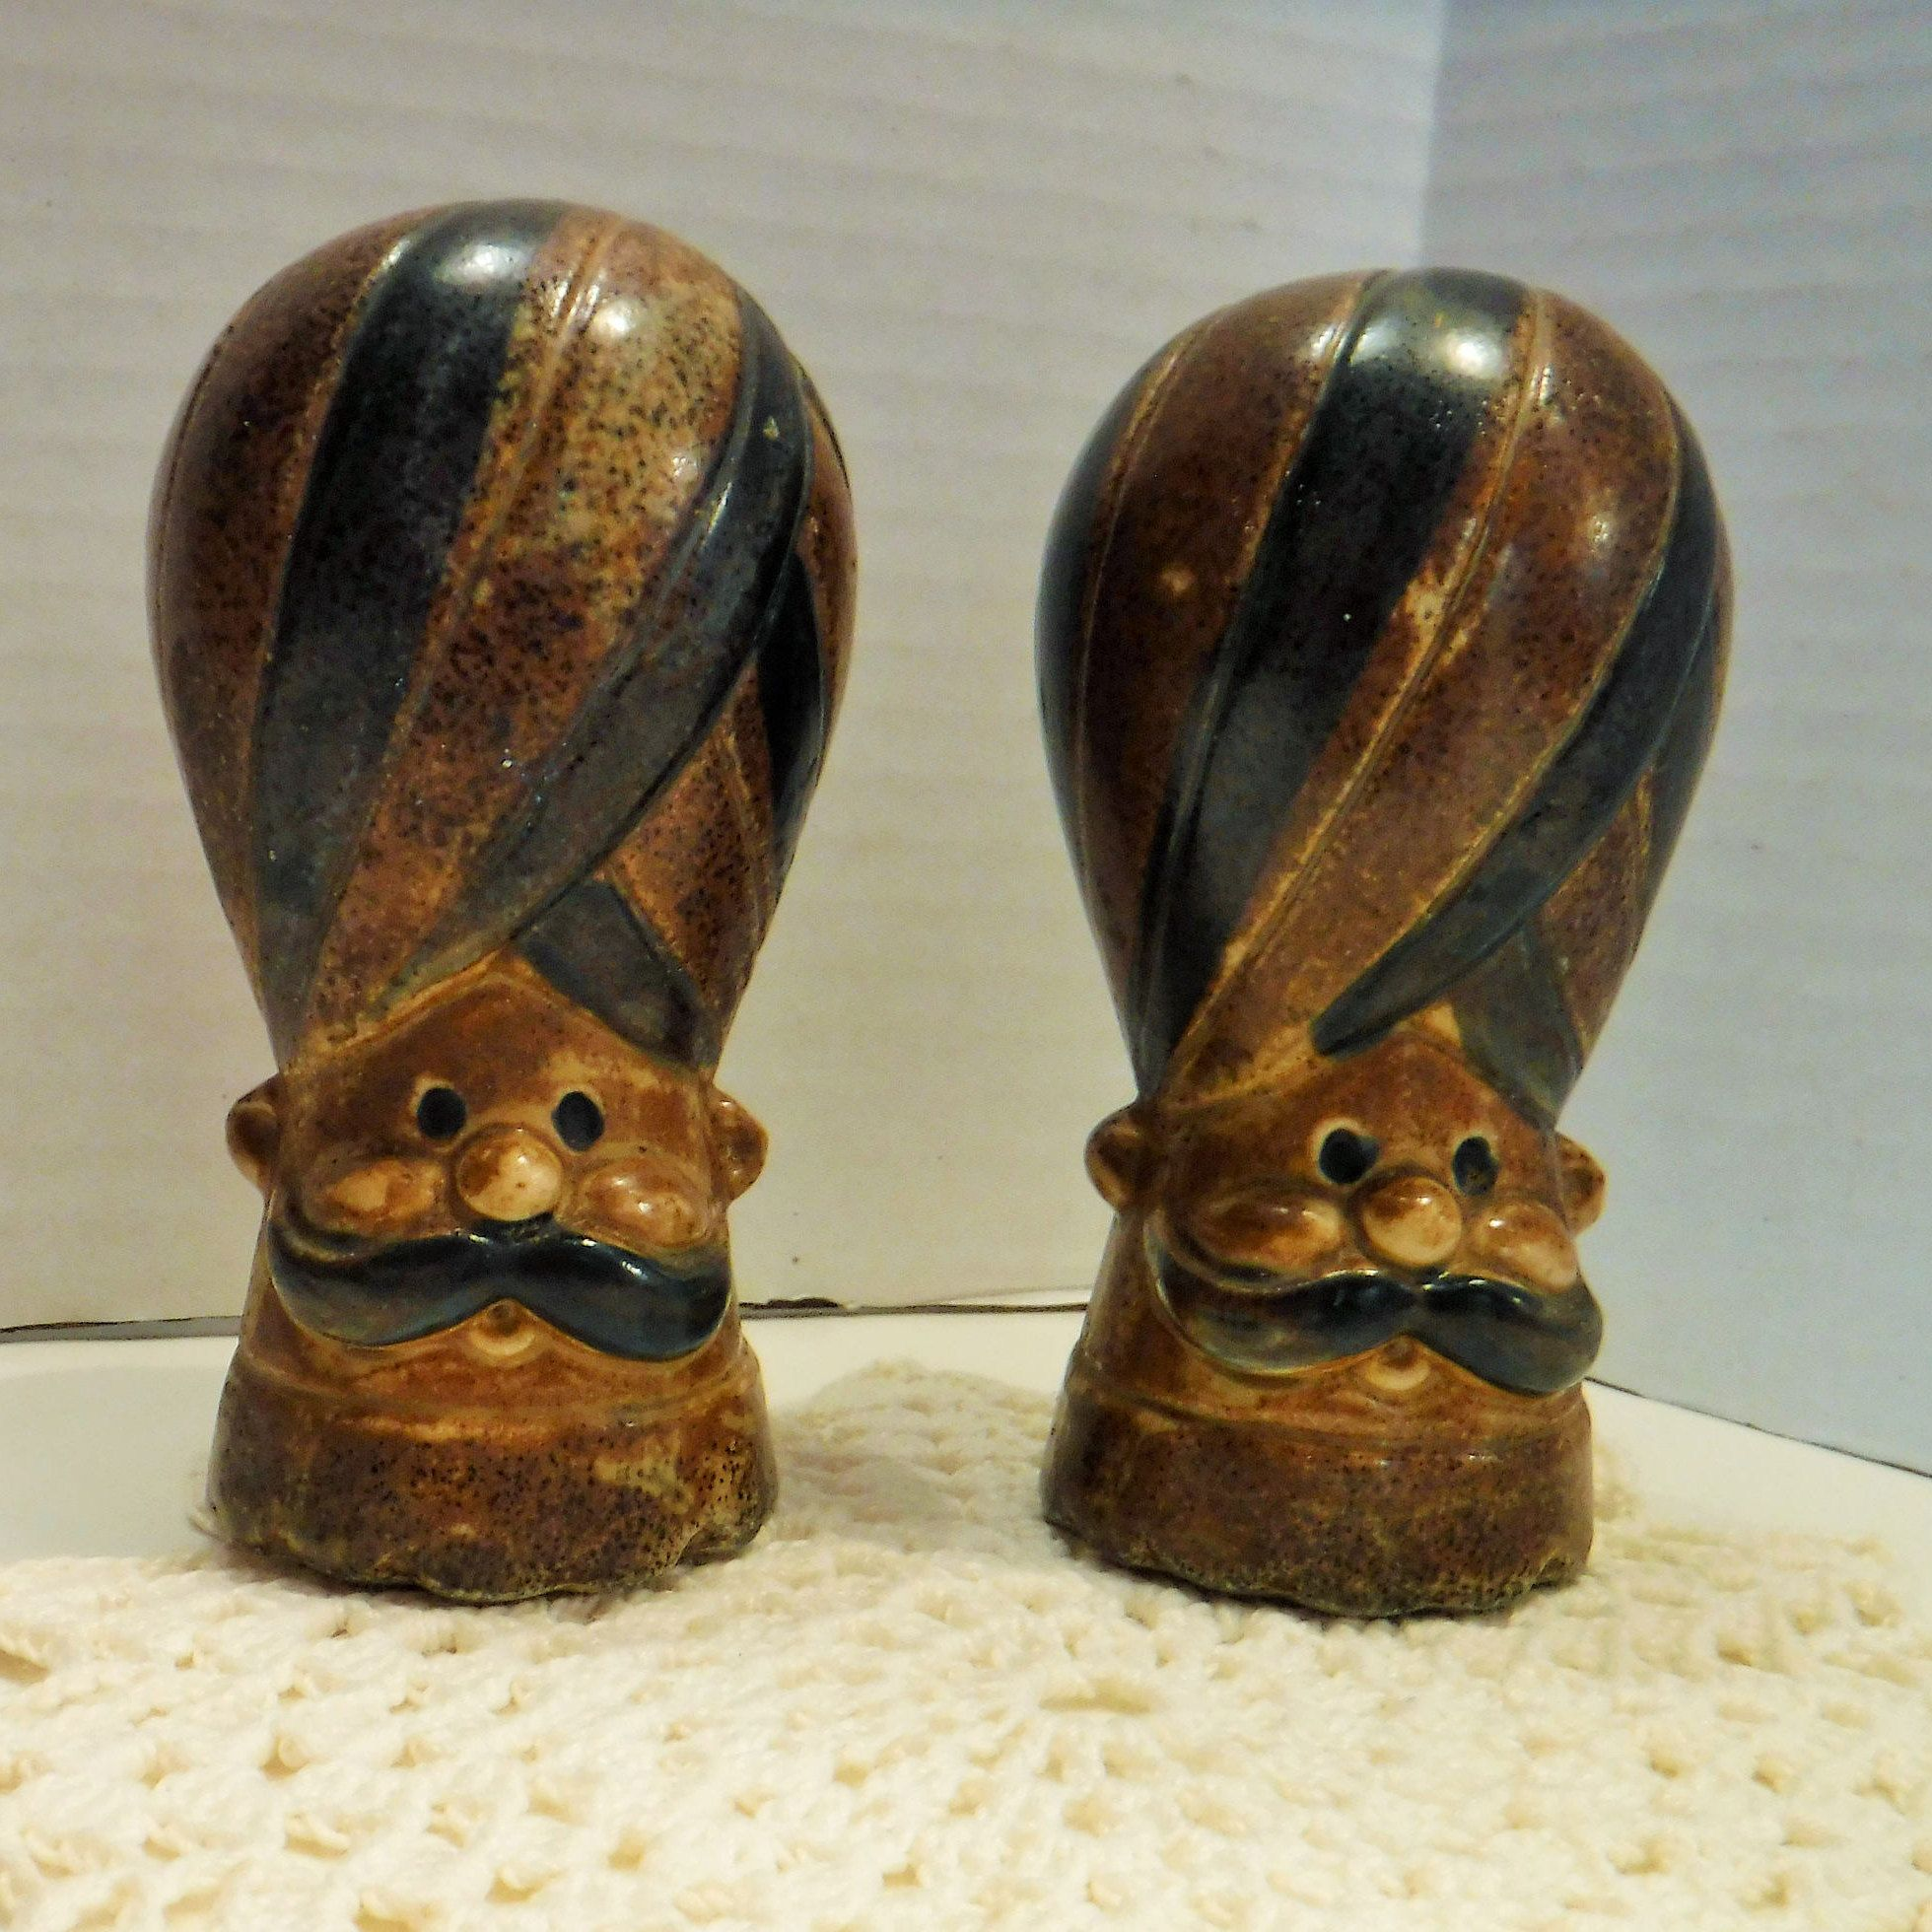 Turban Men Salt and Pepper Shakers Vintage Men Unique Salt and